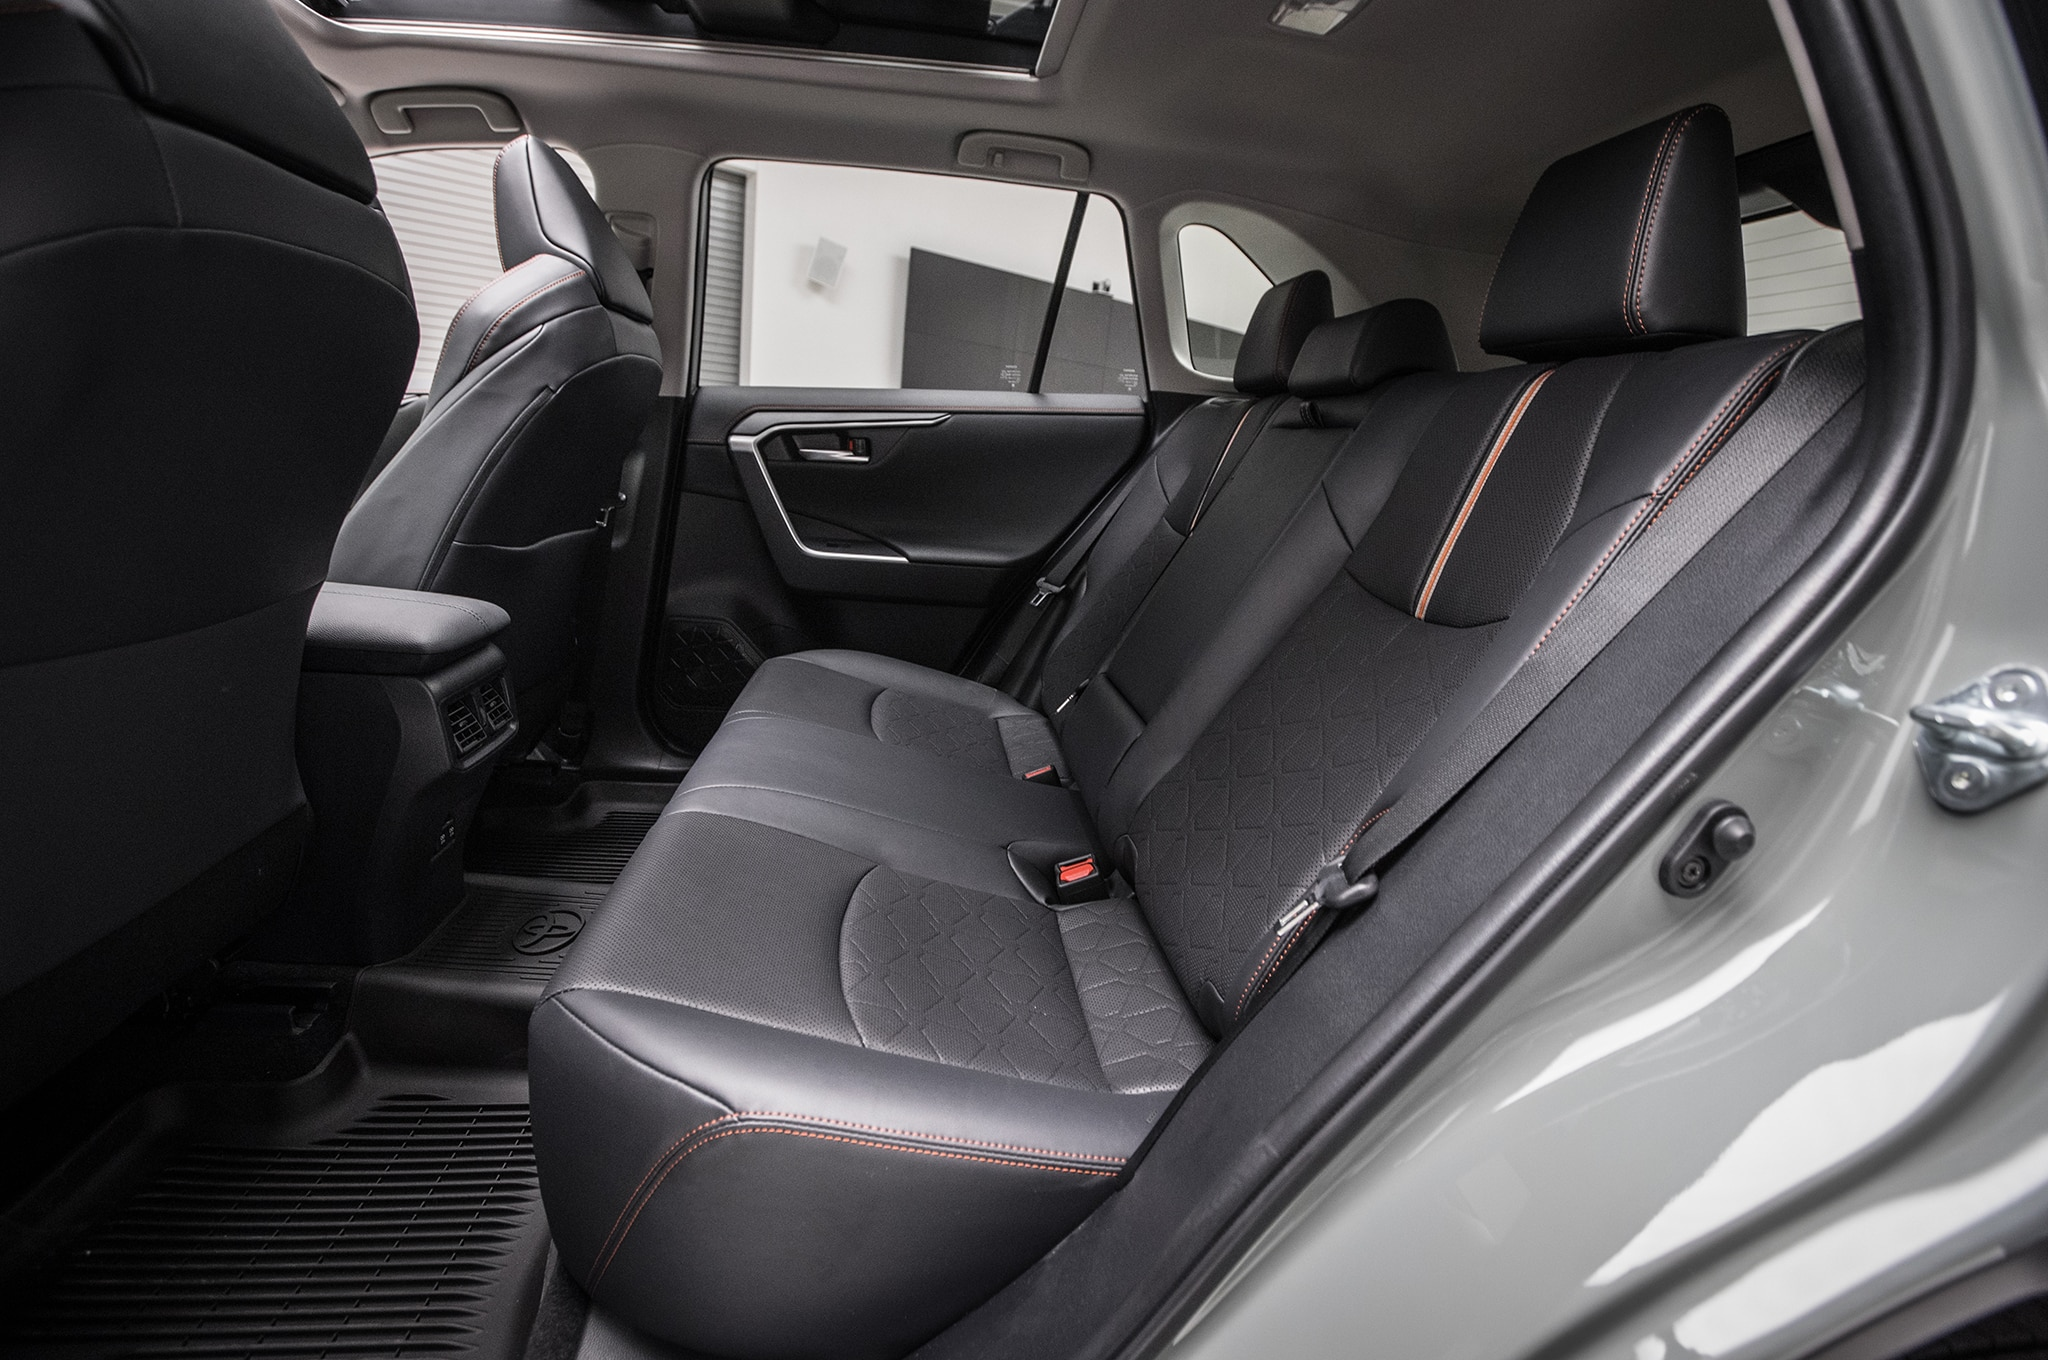 2019 Toyota Rav4 Rear Interior Seats 01 3 Abril 2018 Miguel Cortina